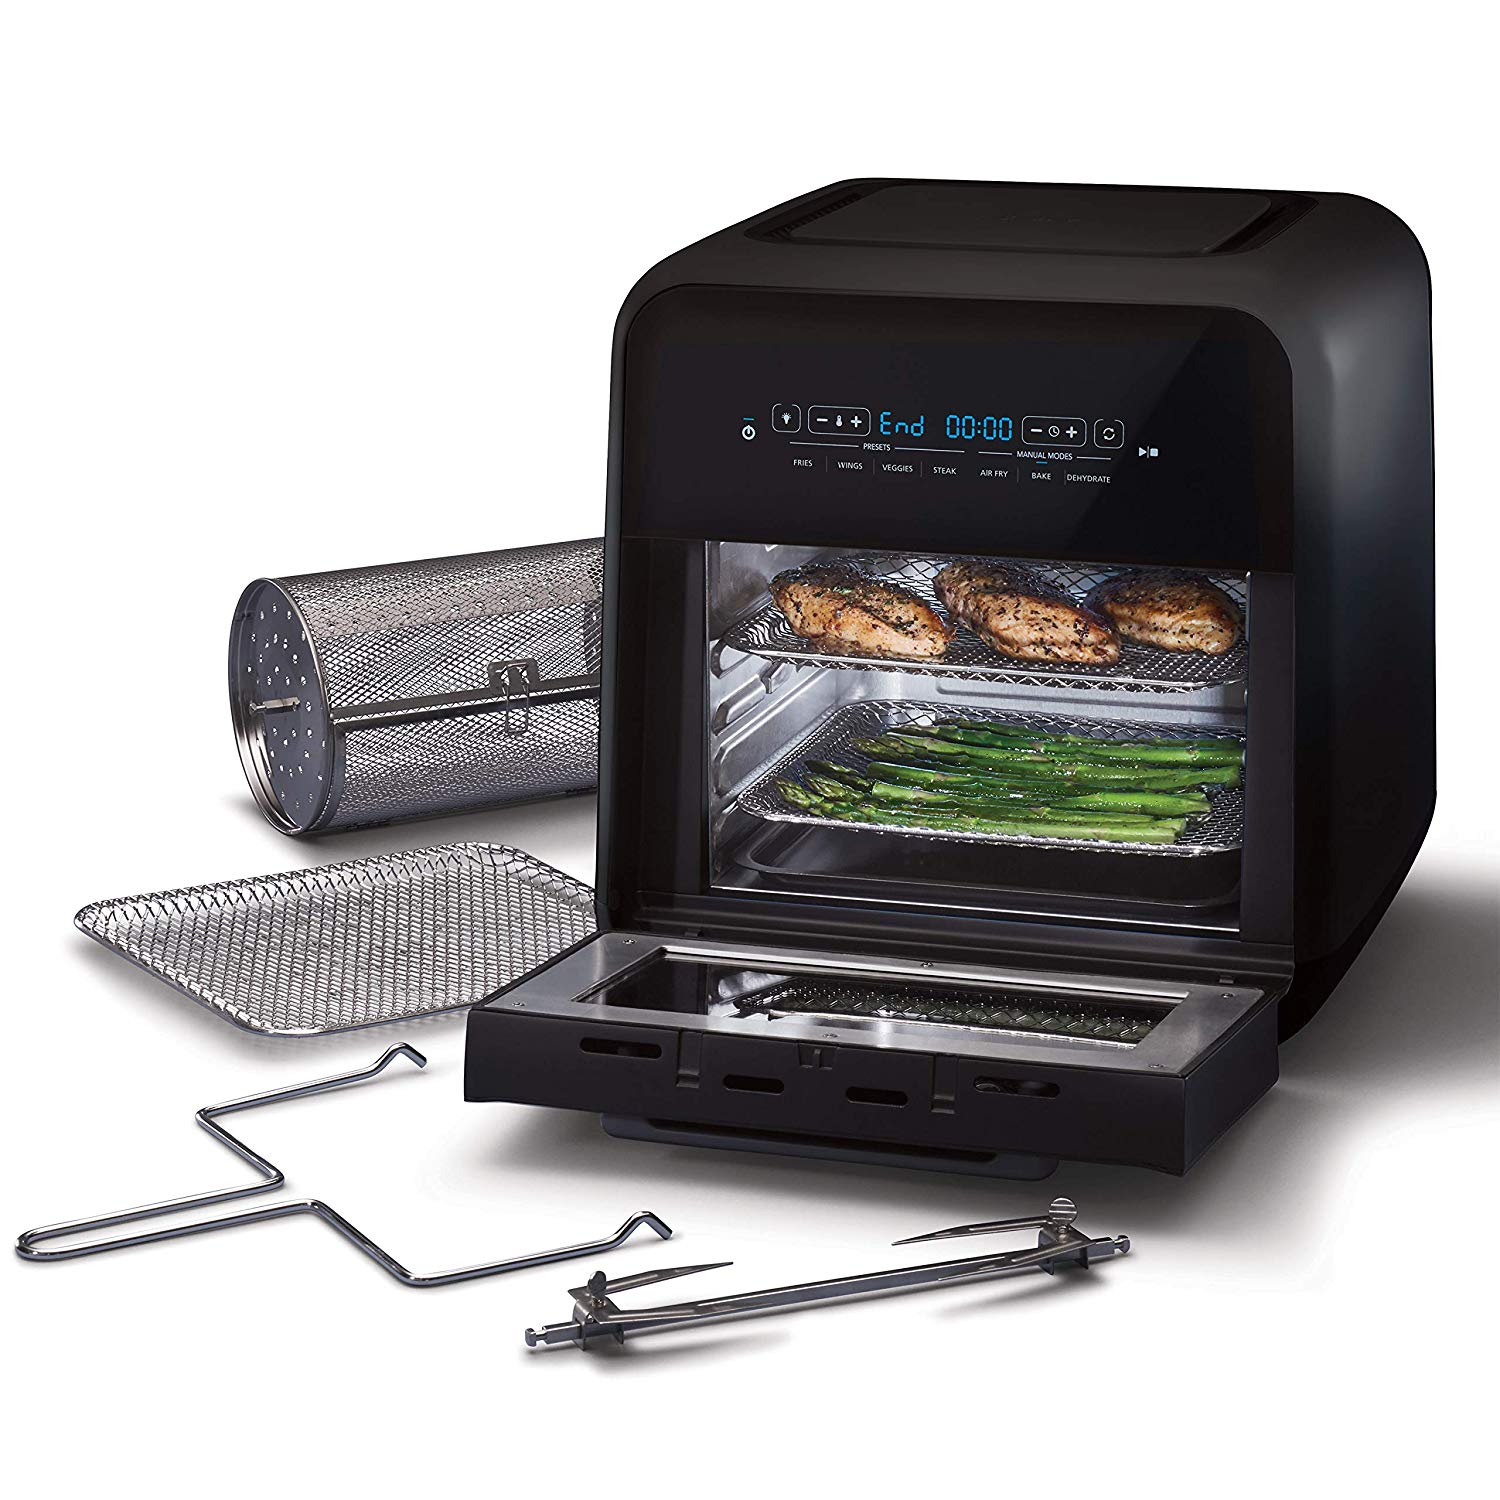 Oster 2086062 Air Fryer Oven & Multi-Cooker, Black : $129.99 *lowest price per CCC*